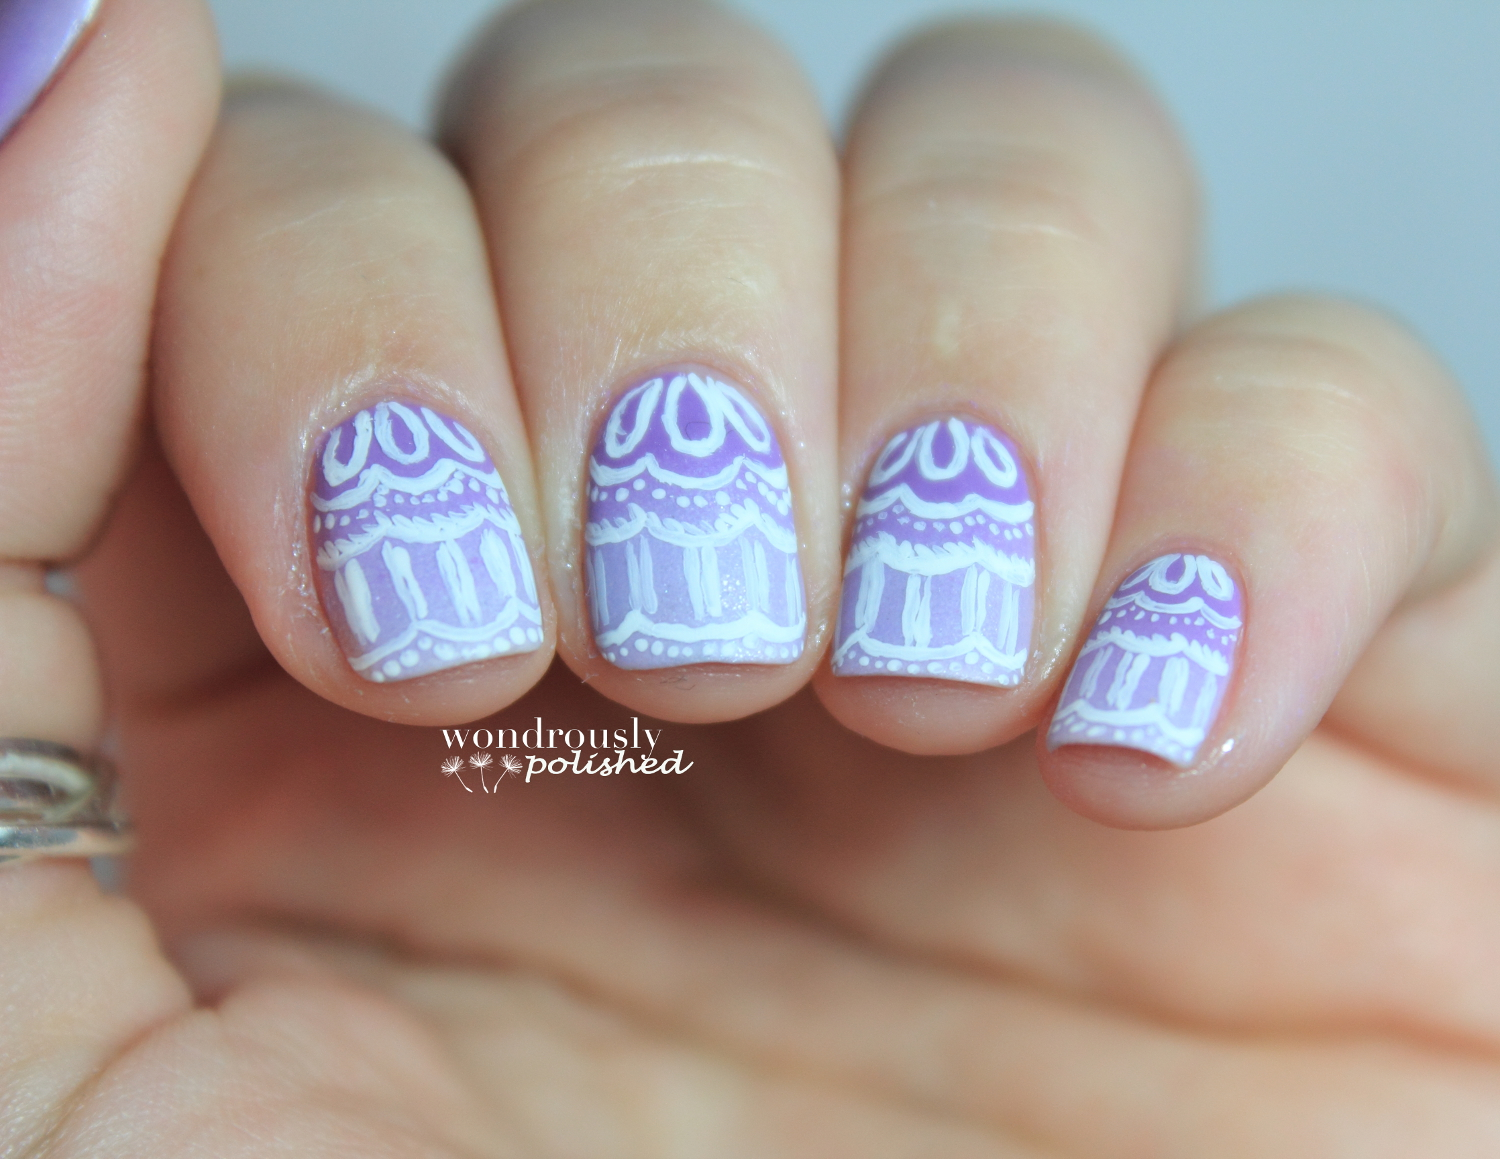 Wondrously Polished: 31 Day Nail Art Challenge - Day 6: Violet Nails